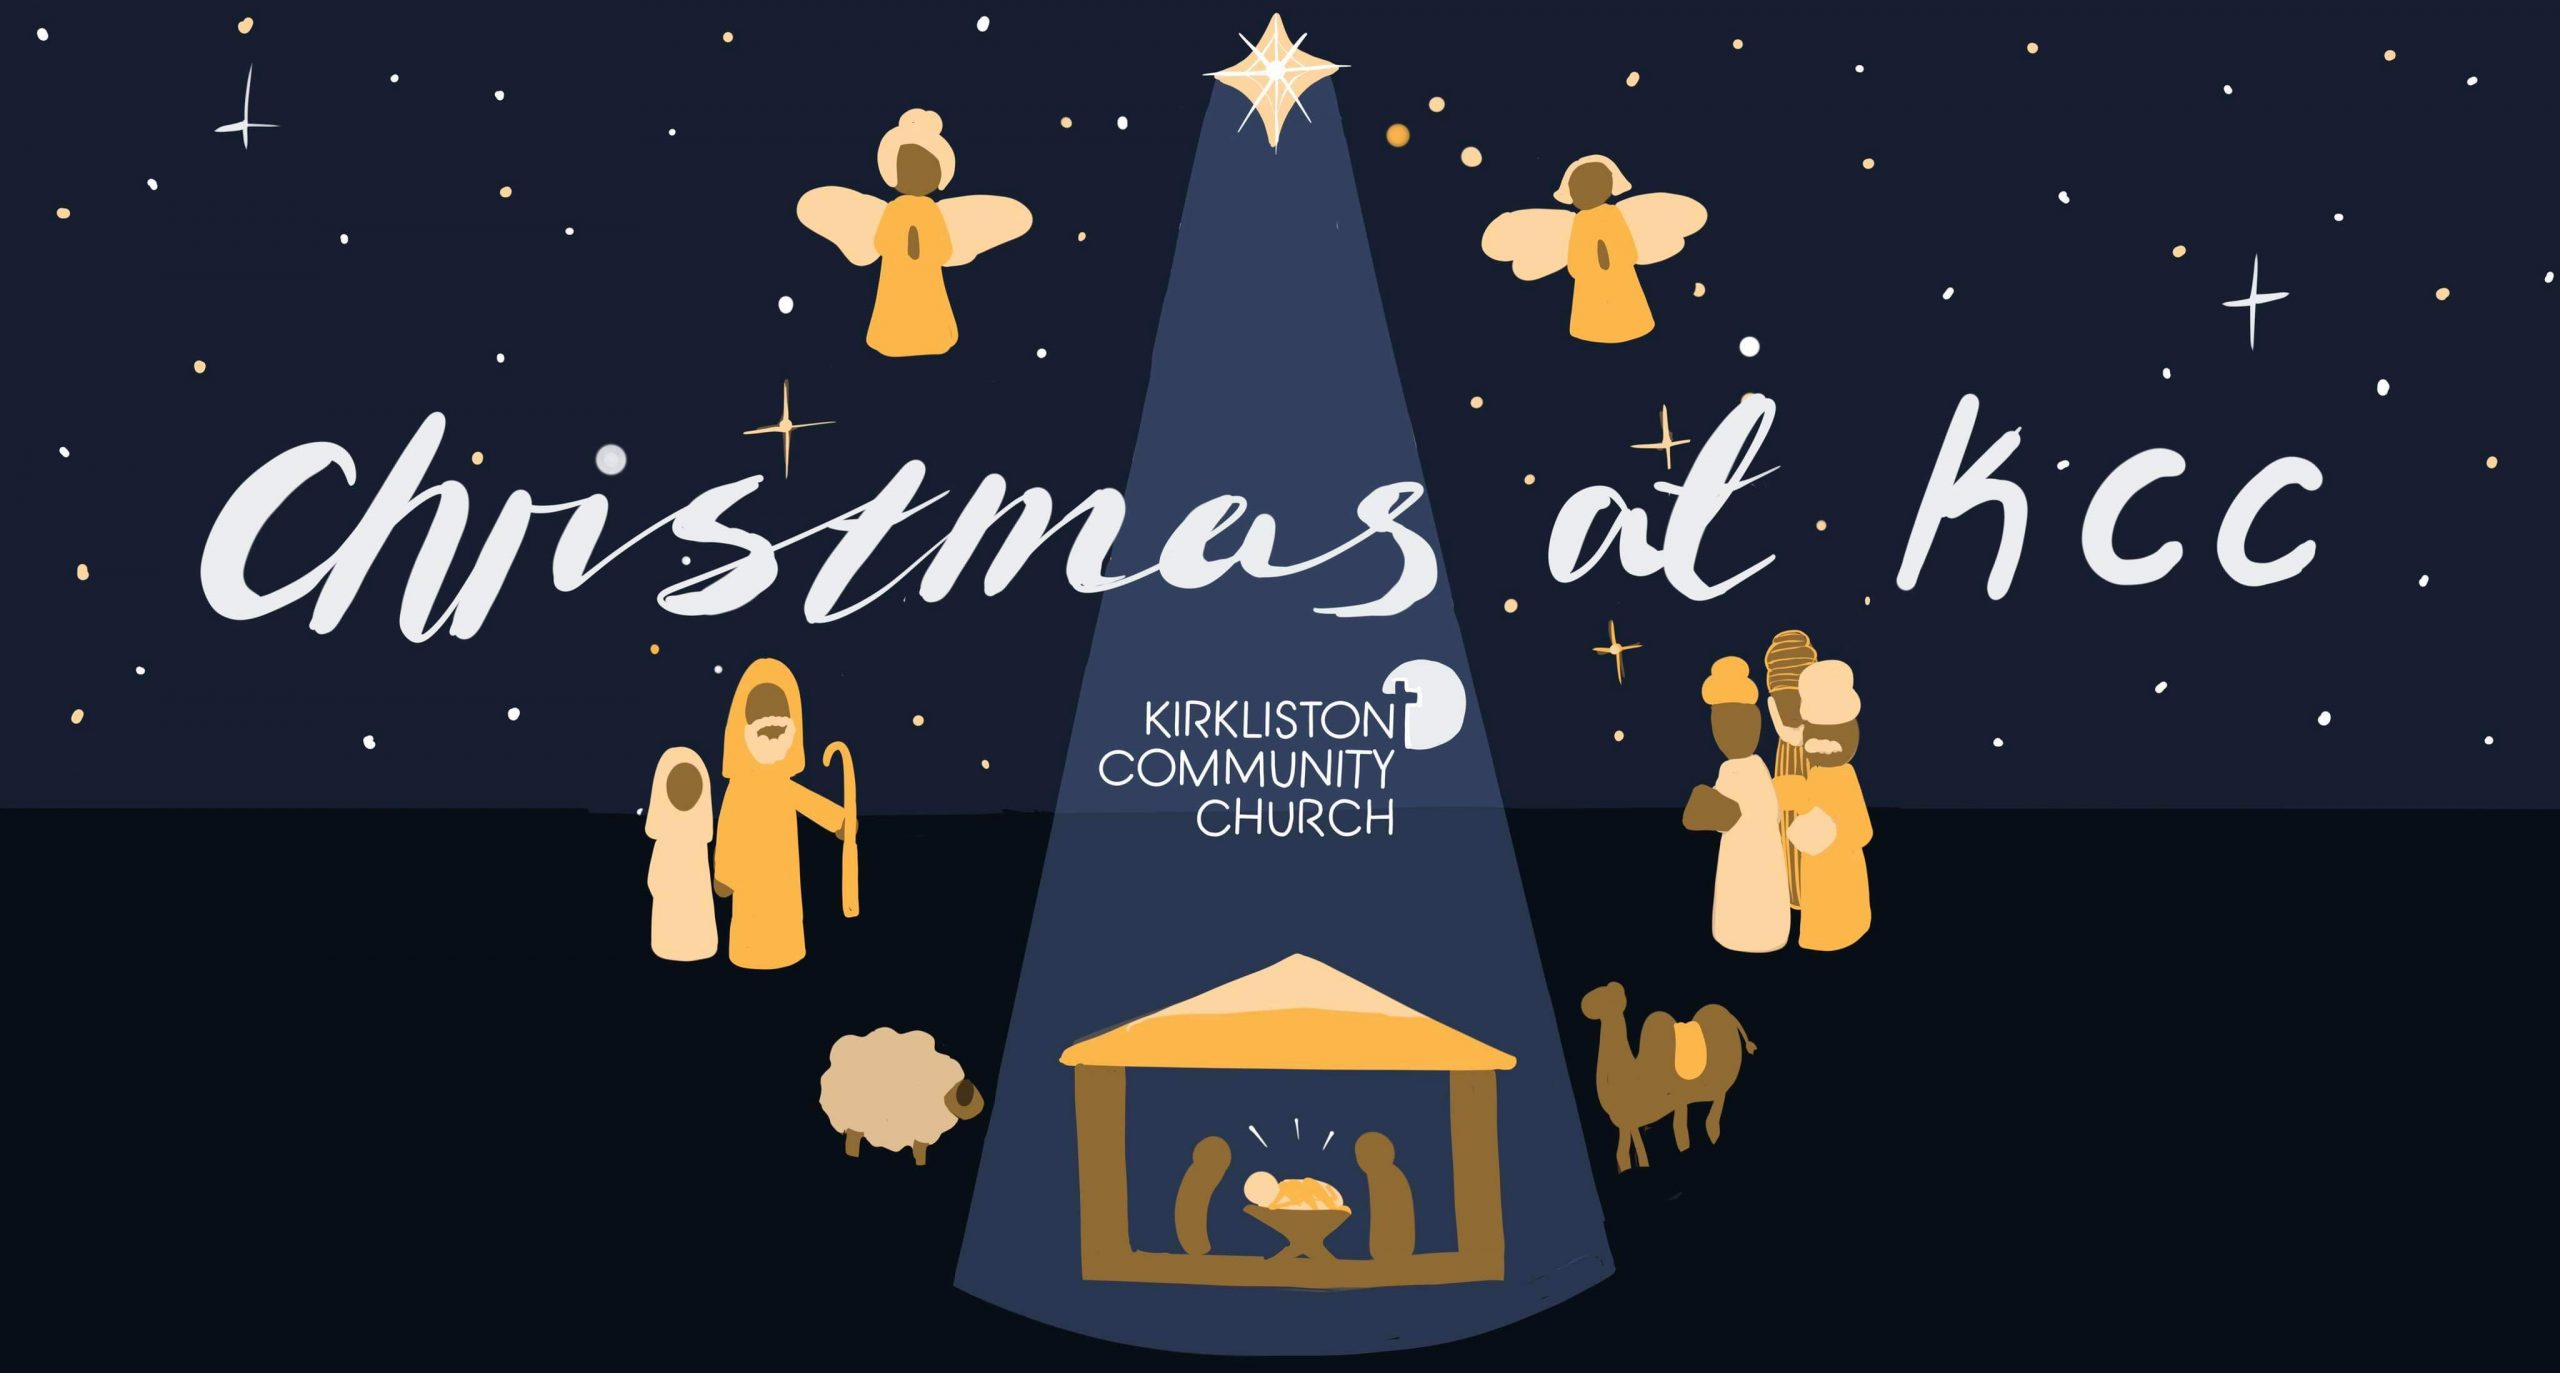 Christmas at KCC artwork including angels, a stable, shepherds, Mary, Joseph and baby Jesus.